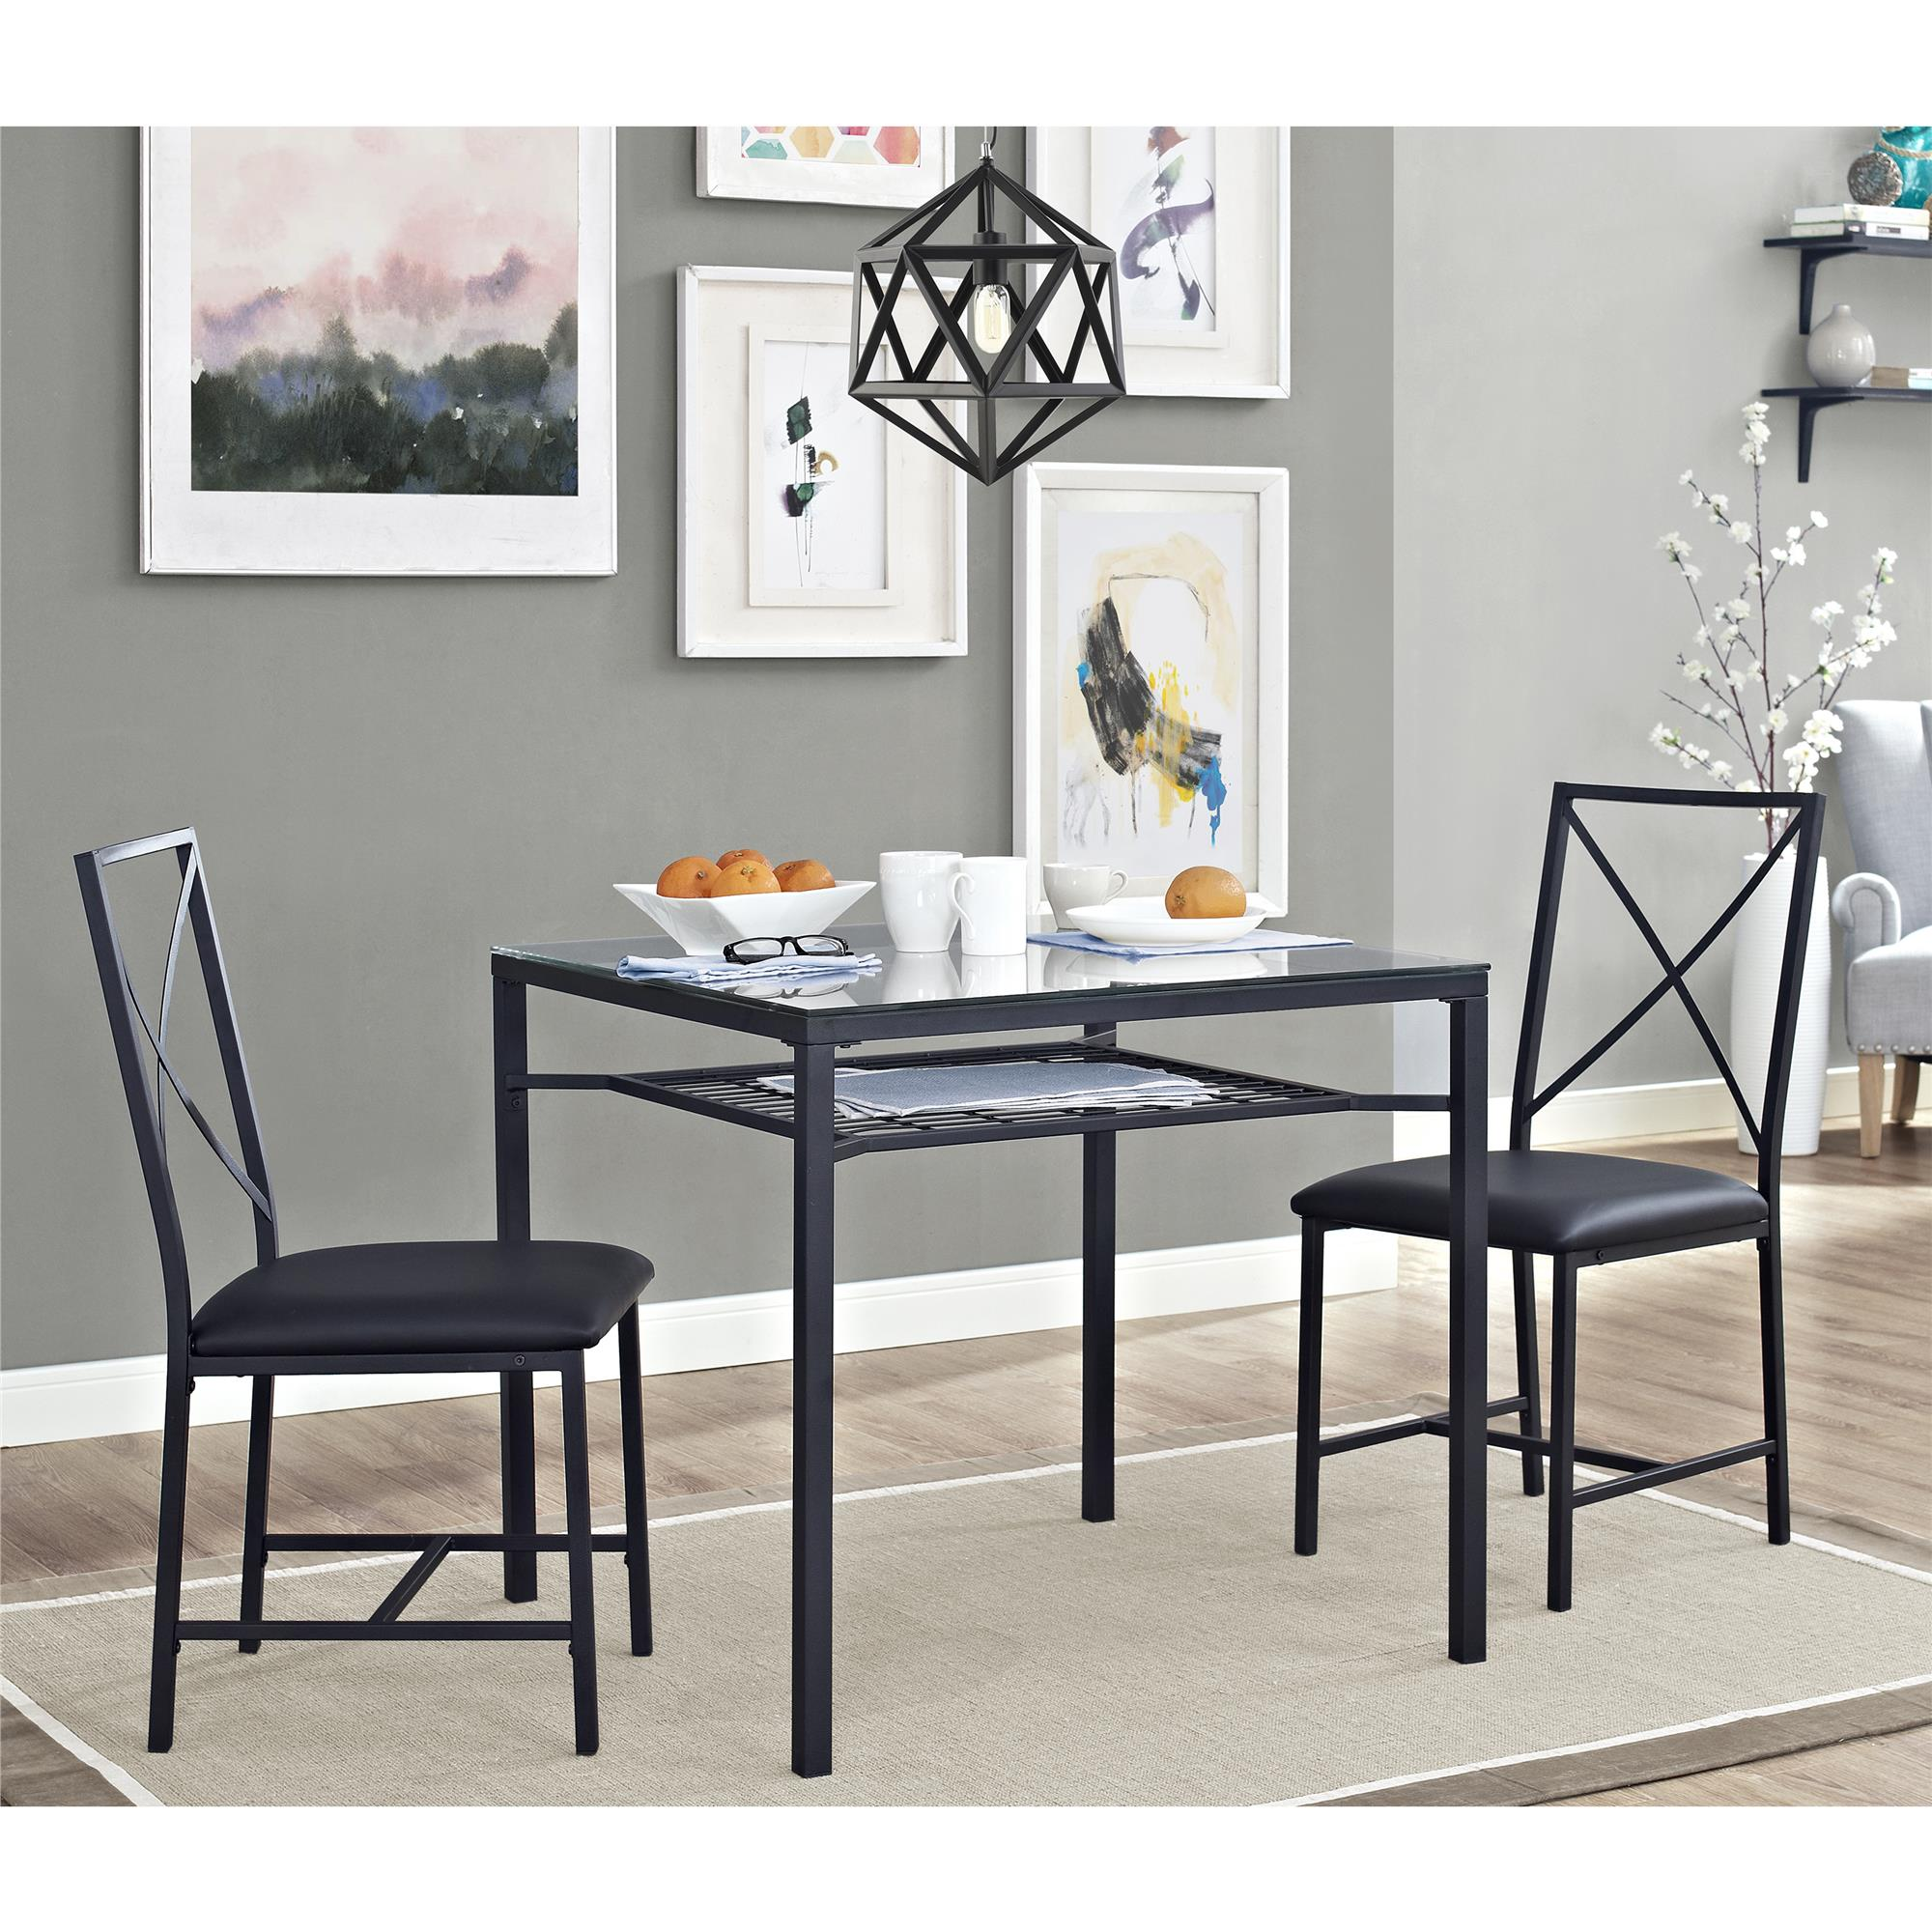 dorel living mainstays piece metal and glass dinette black source square accent table space with the featuring sturdy construction finish this set includes dining large white deep